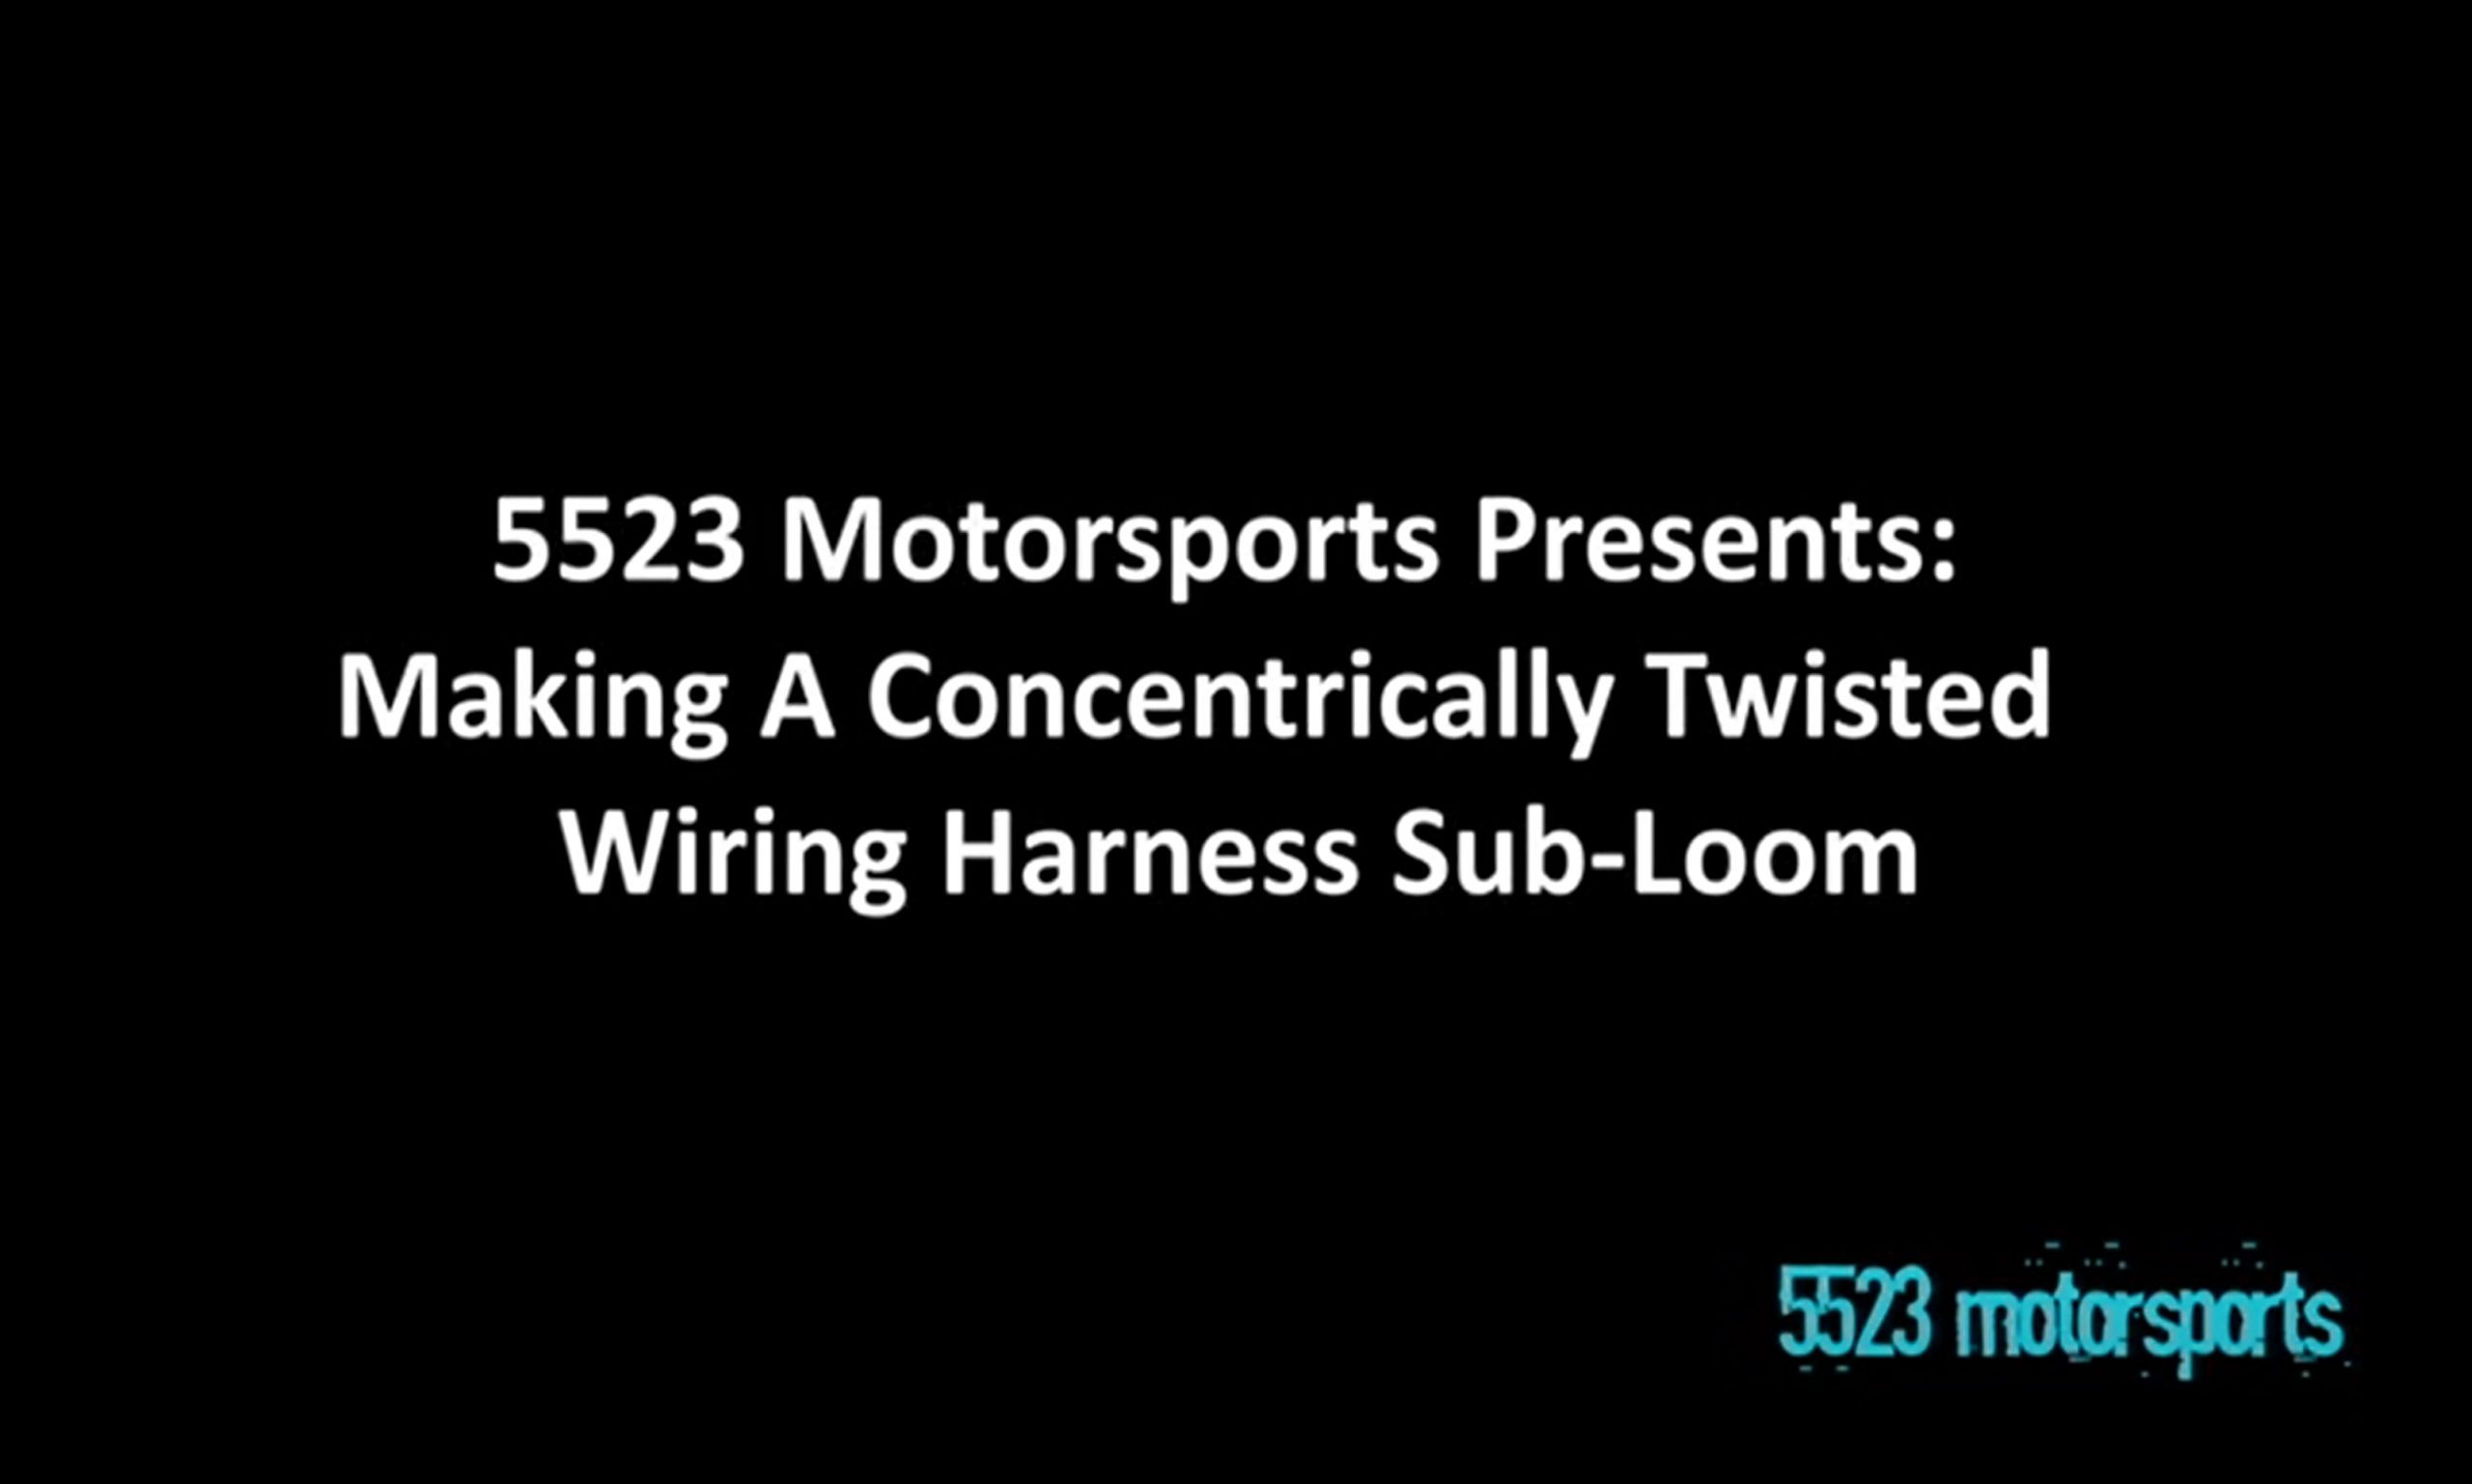 Building a concentrically twisted wiring harness